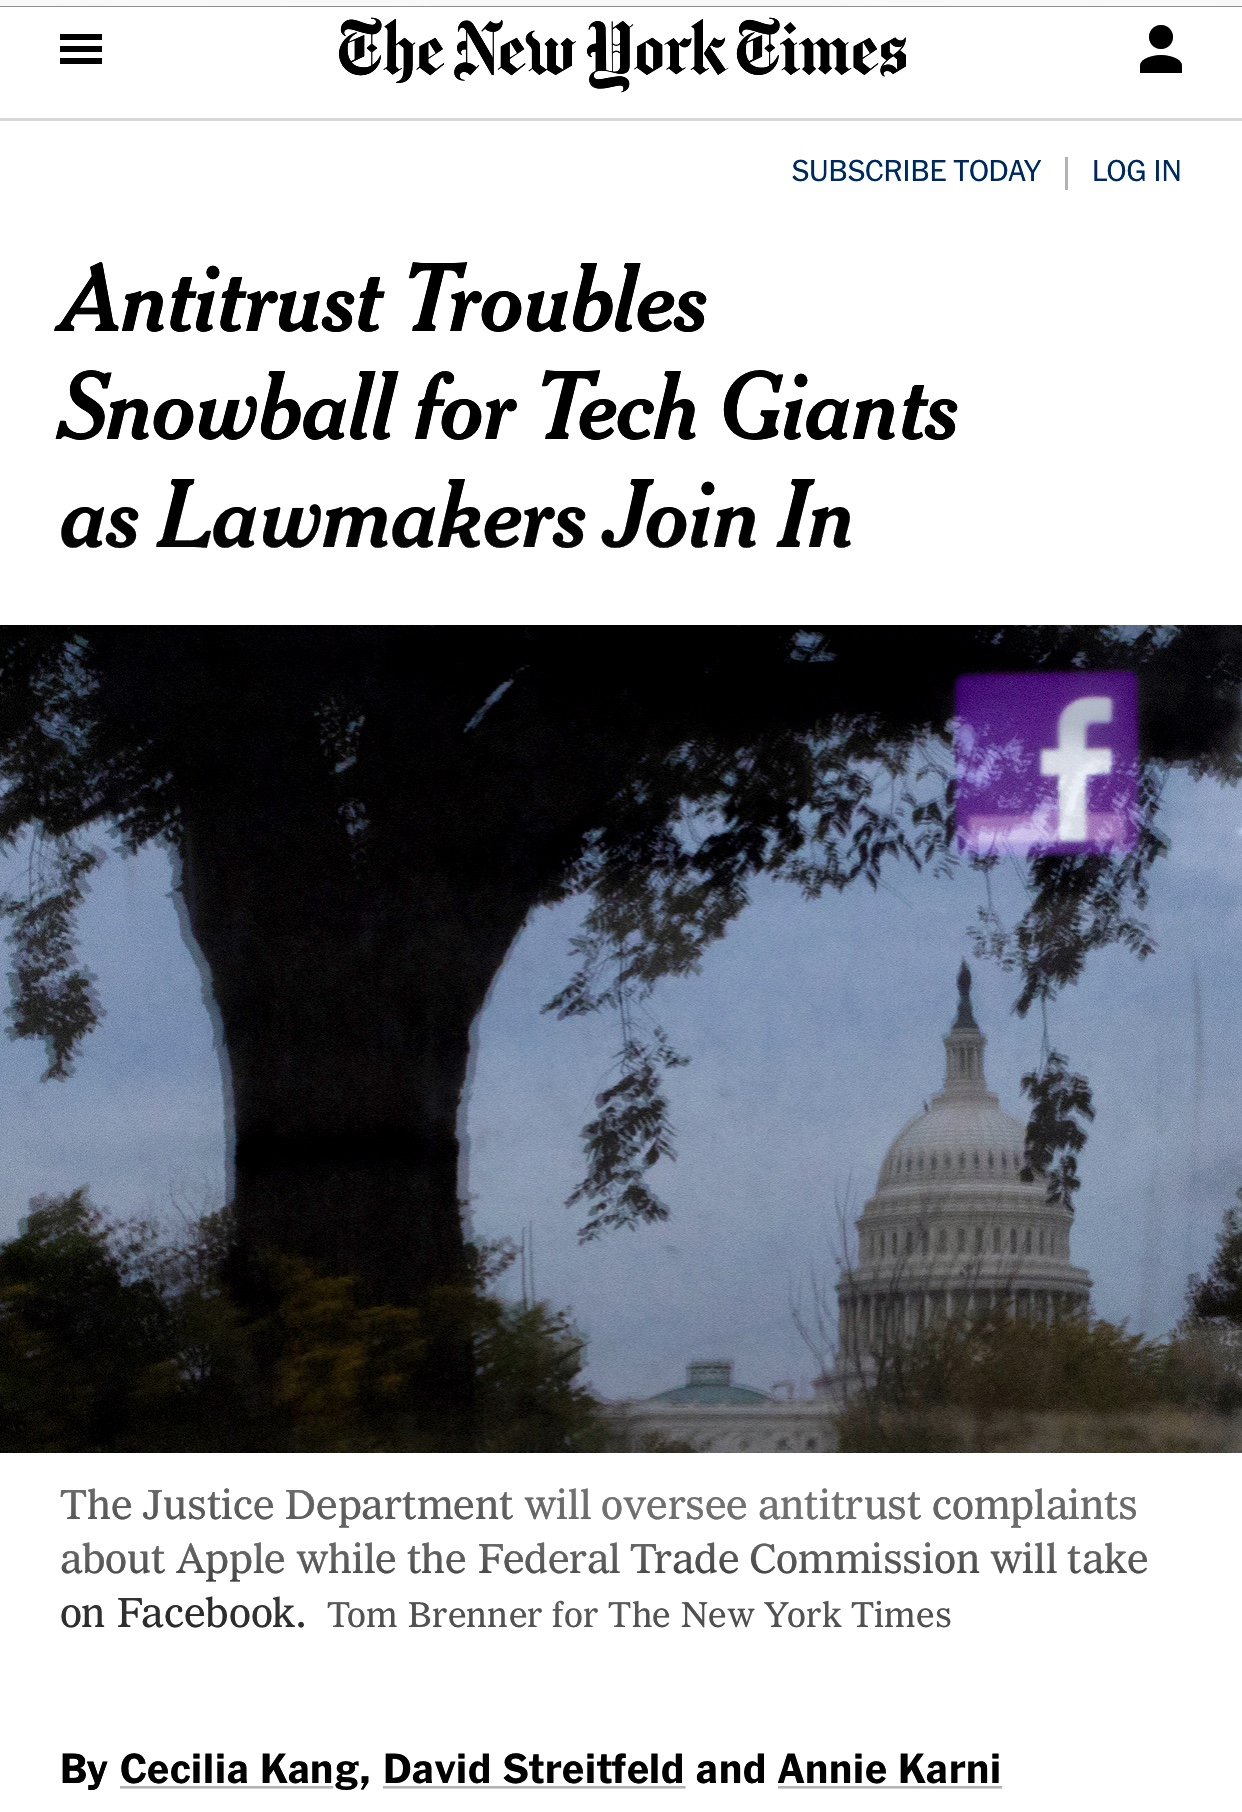 Antitrust Troubles Snowball for Tech Giants as Lawmakers Join In – The New York Times